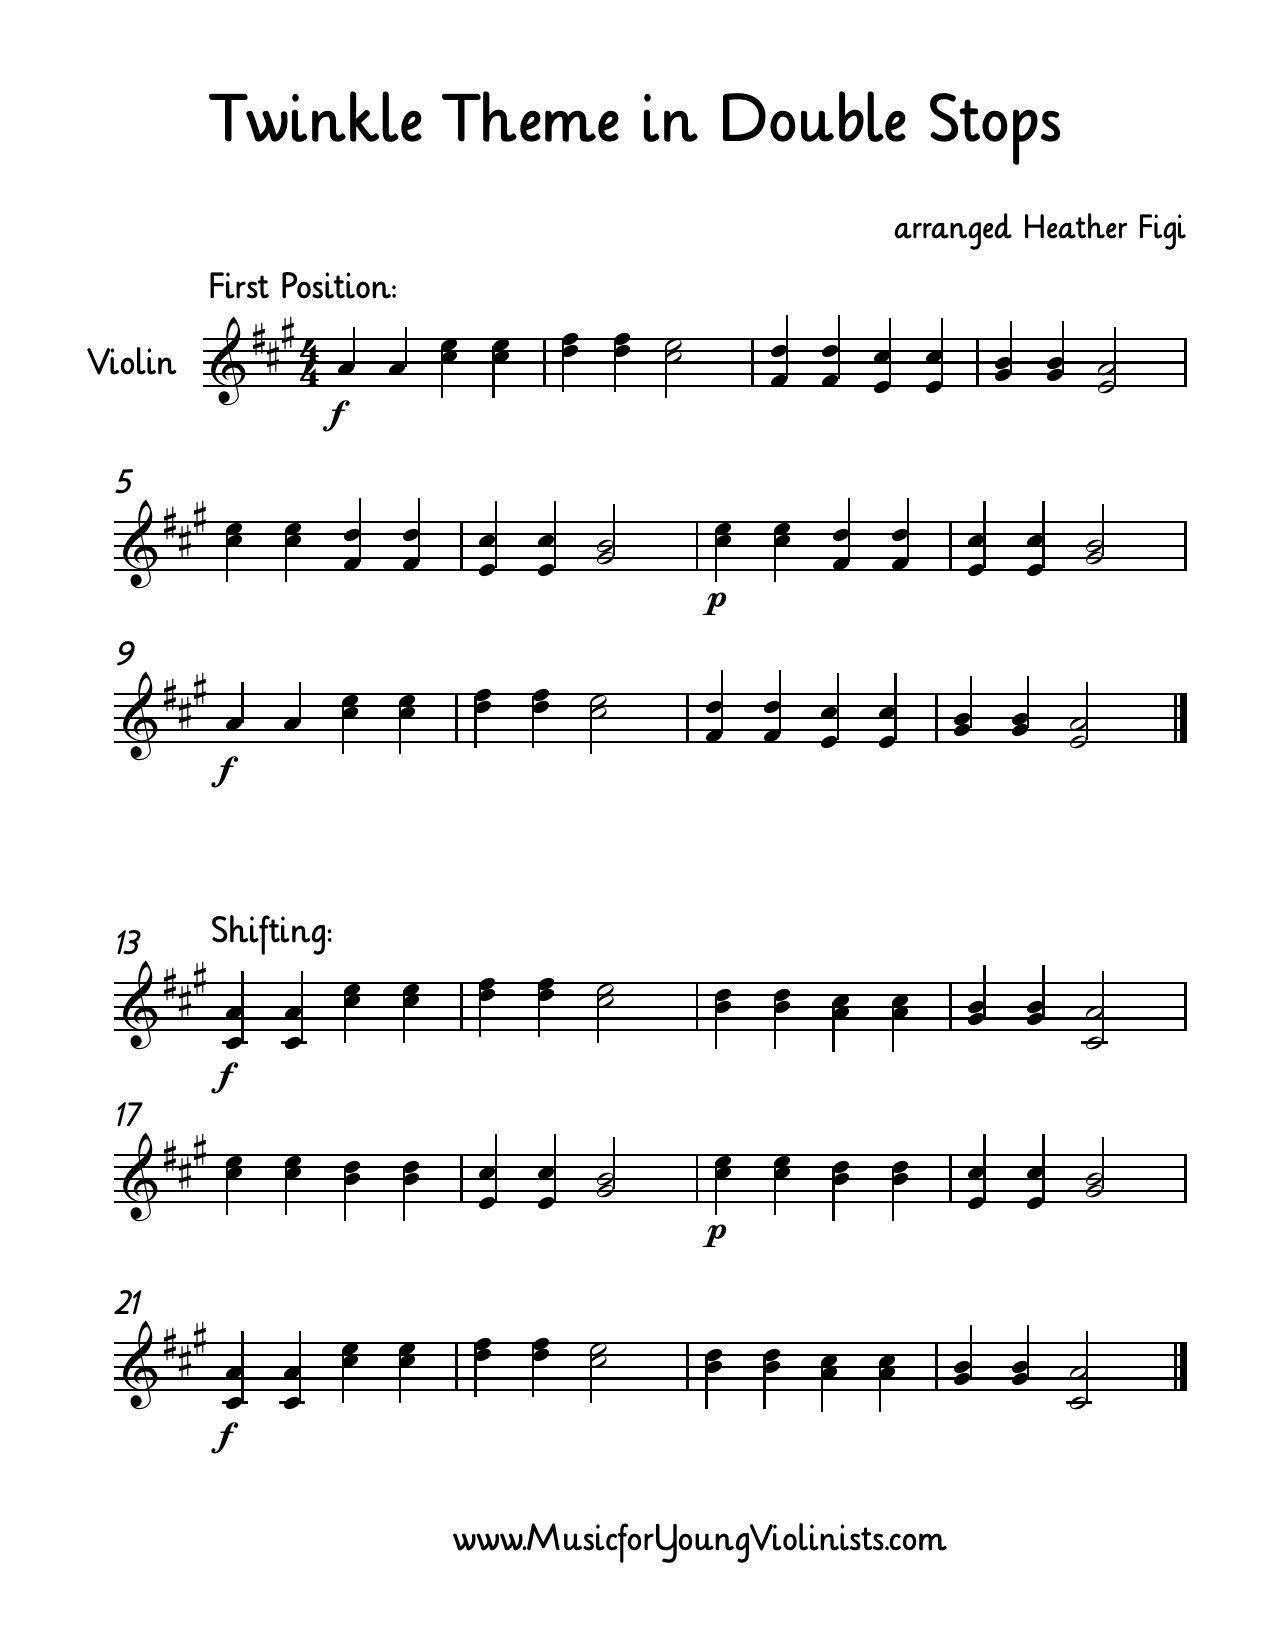 Free Sheet Music (Violin): Twinkle Theme arranged with